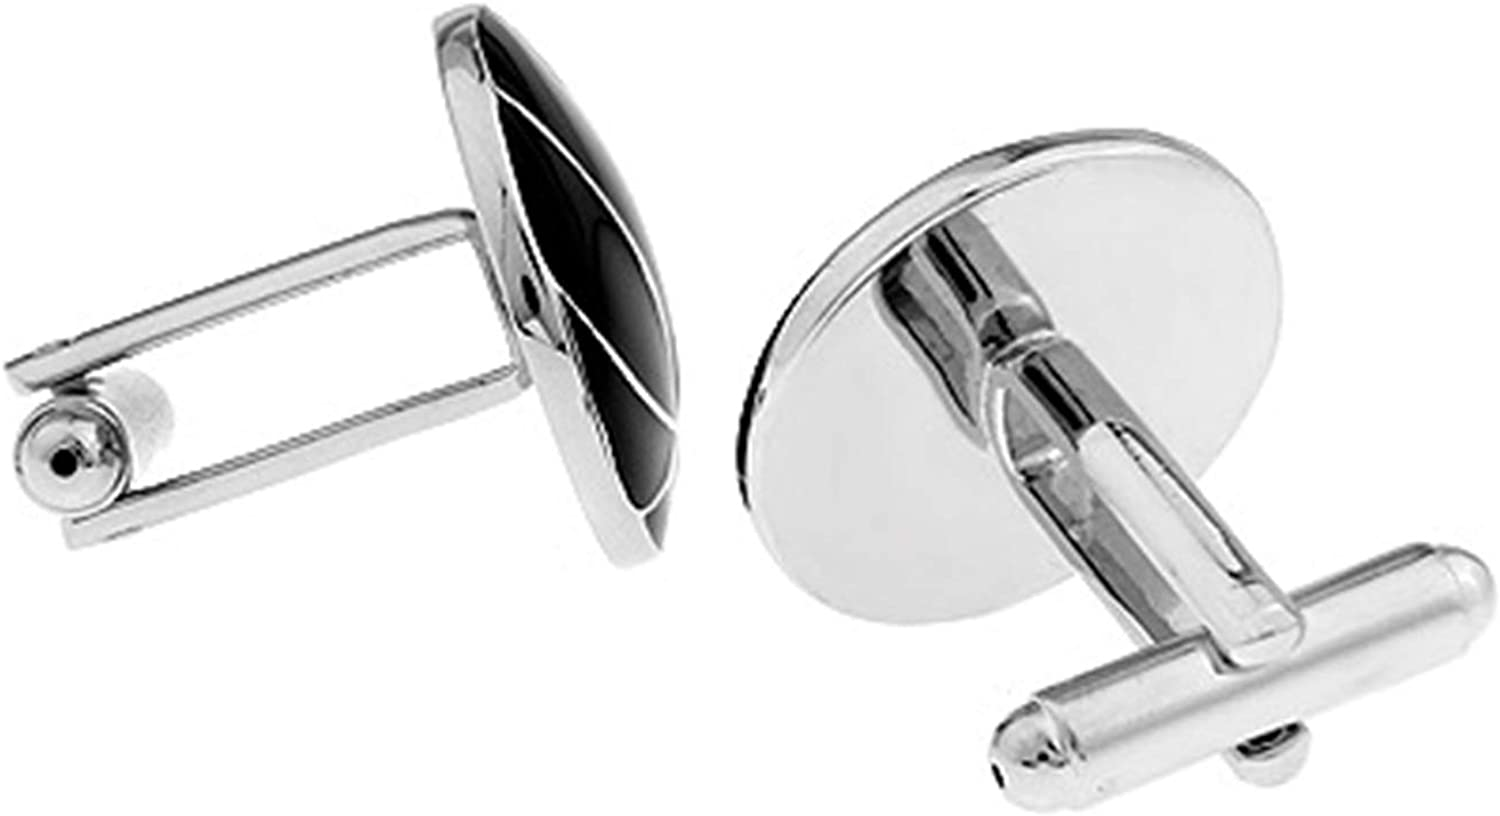 Daesar Cuff Link and Stud Set Cufflink Shirts for Men Basketball Black Cuff Links and Studs